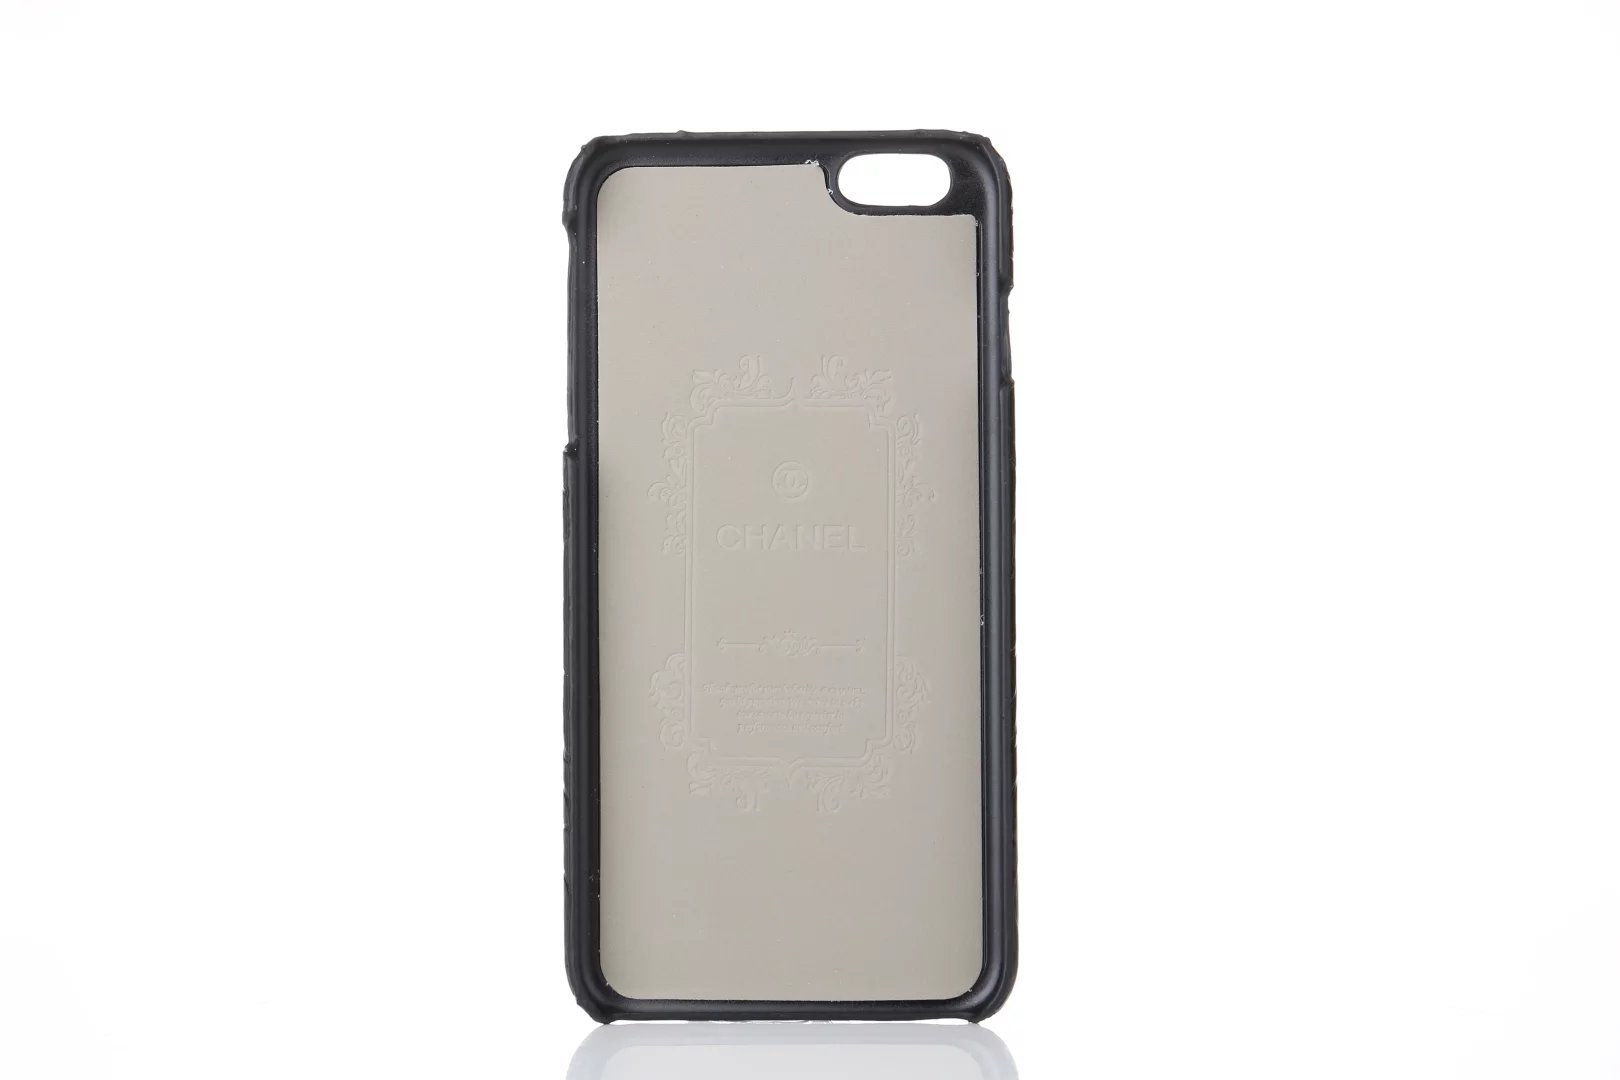 iphone 6 Plus case with cover cool iphone 6 Plus cases for sale fashion iphone6 plus case mophi case designer iphone cases for men phone covers iphone 6 c cover phone cover creator iphone 6 mophie juice pack plus